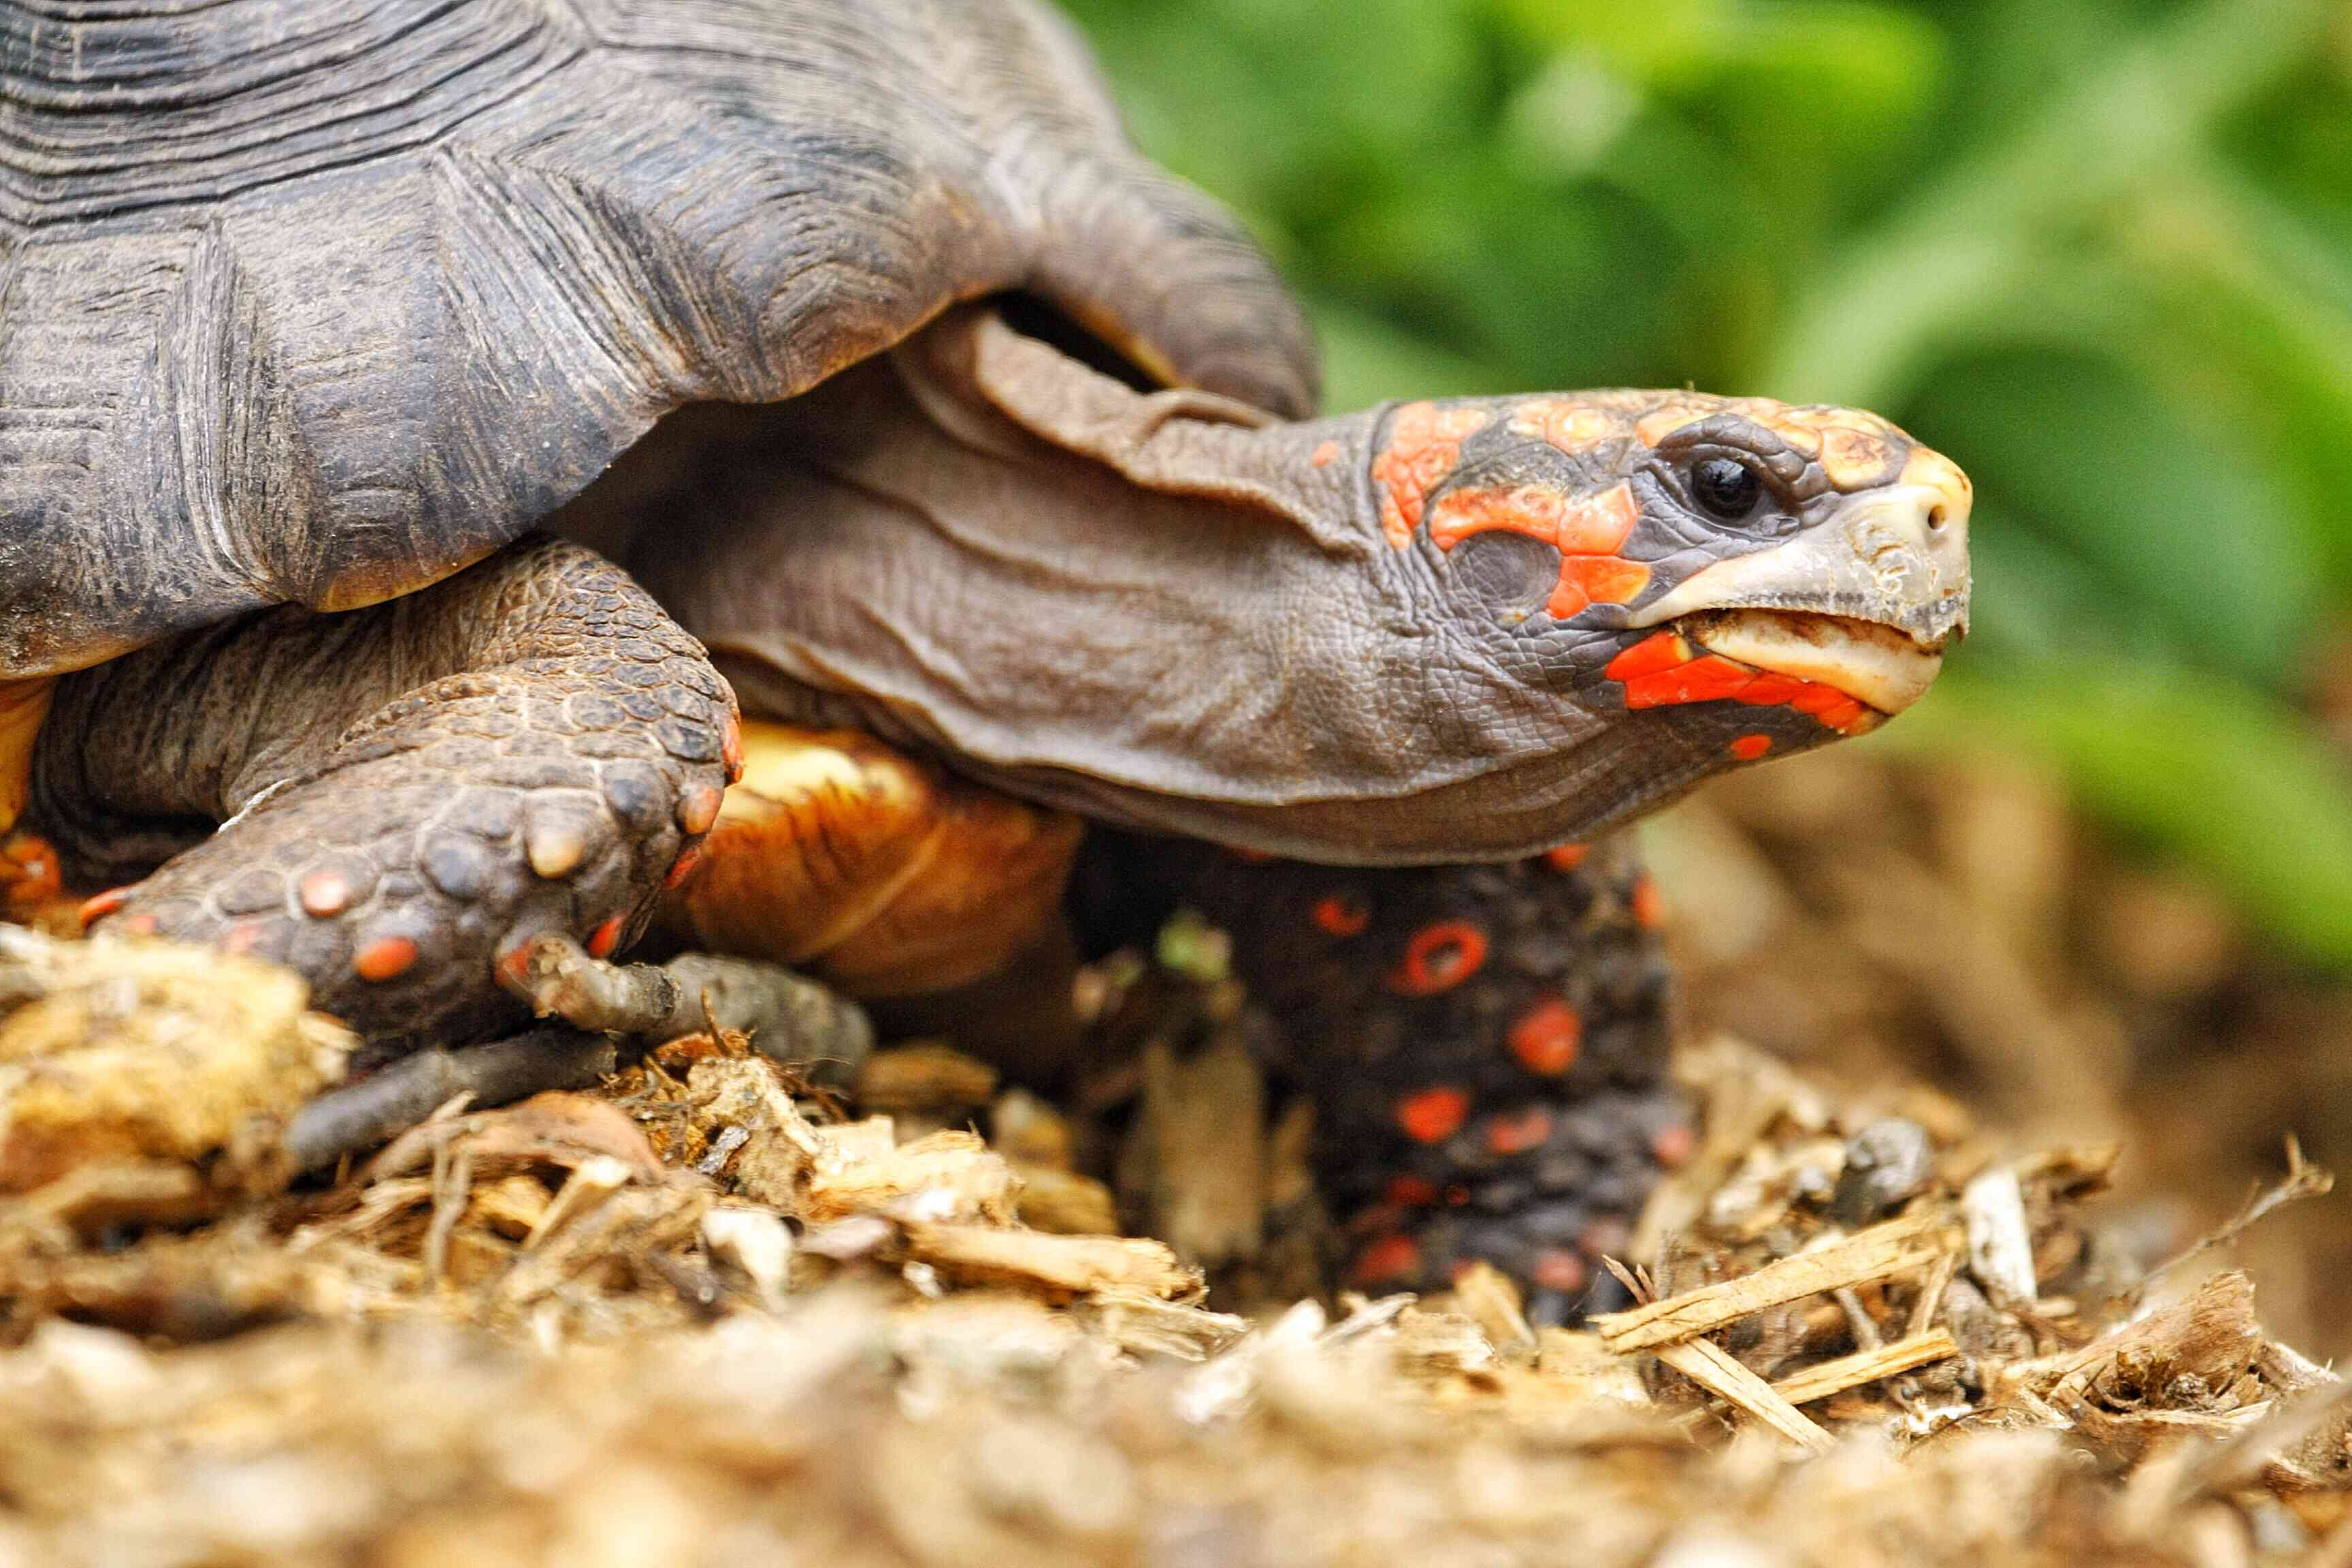 Close up of a red-footed tortoise looking at the camera